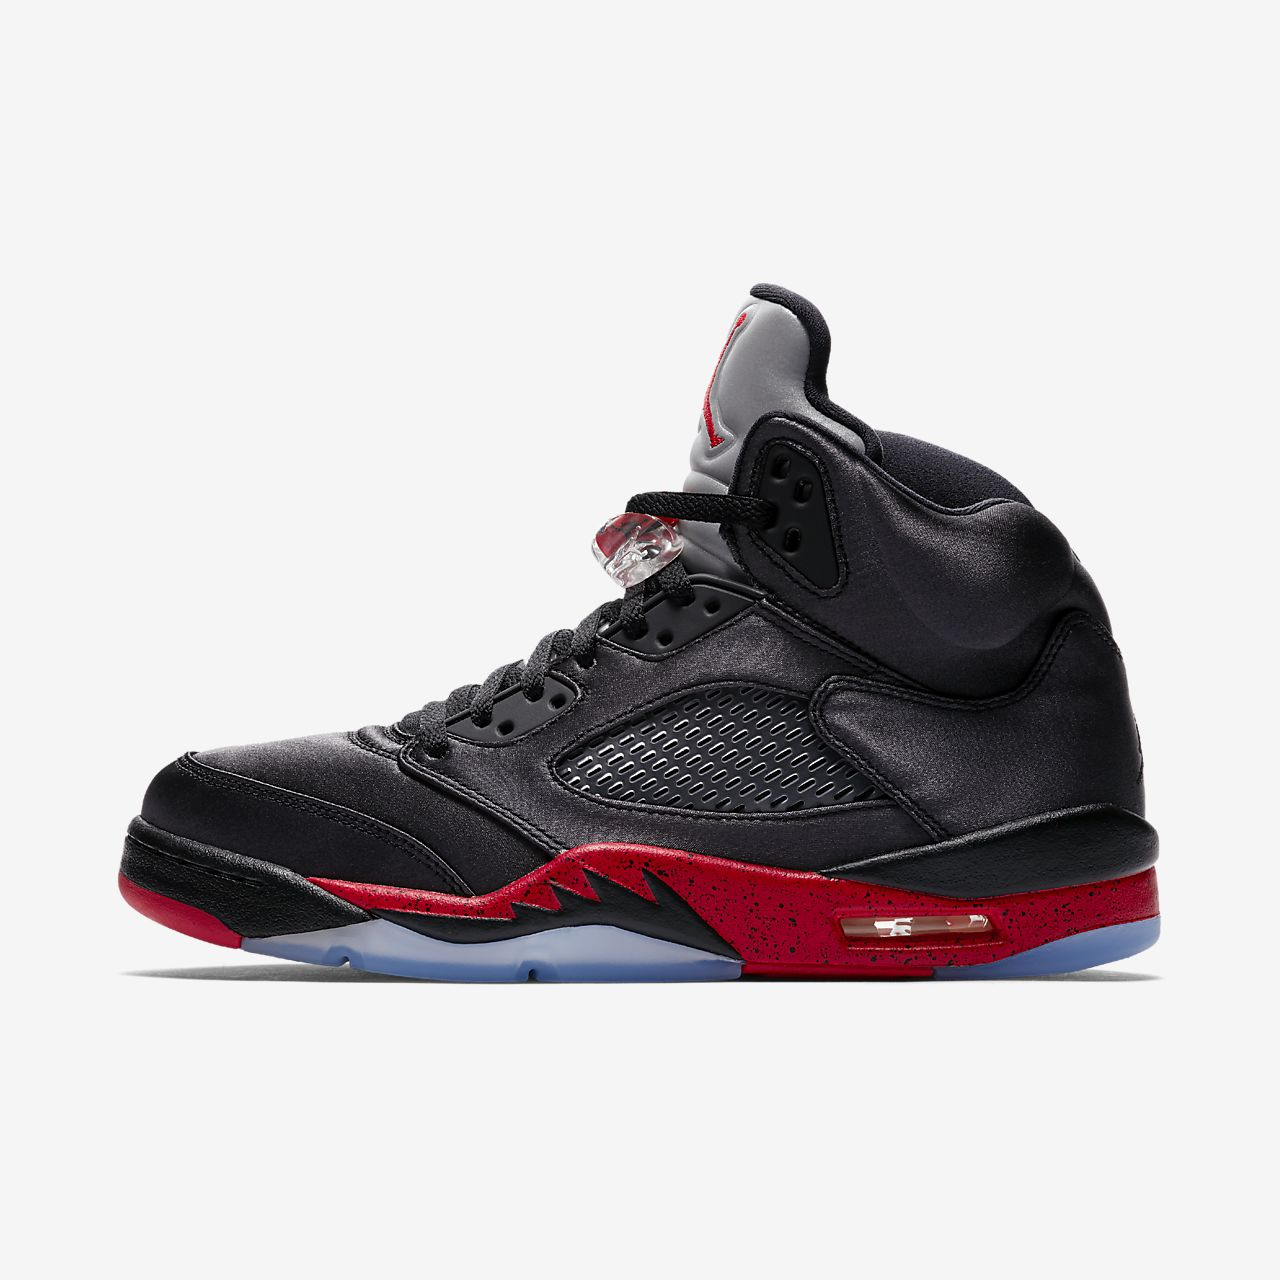 premium selection b351b c617d Air Jordan 5 Retro